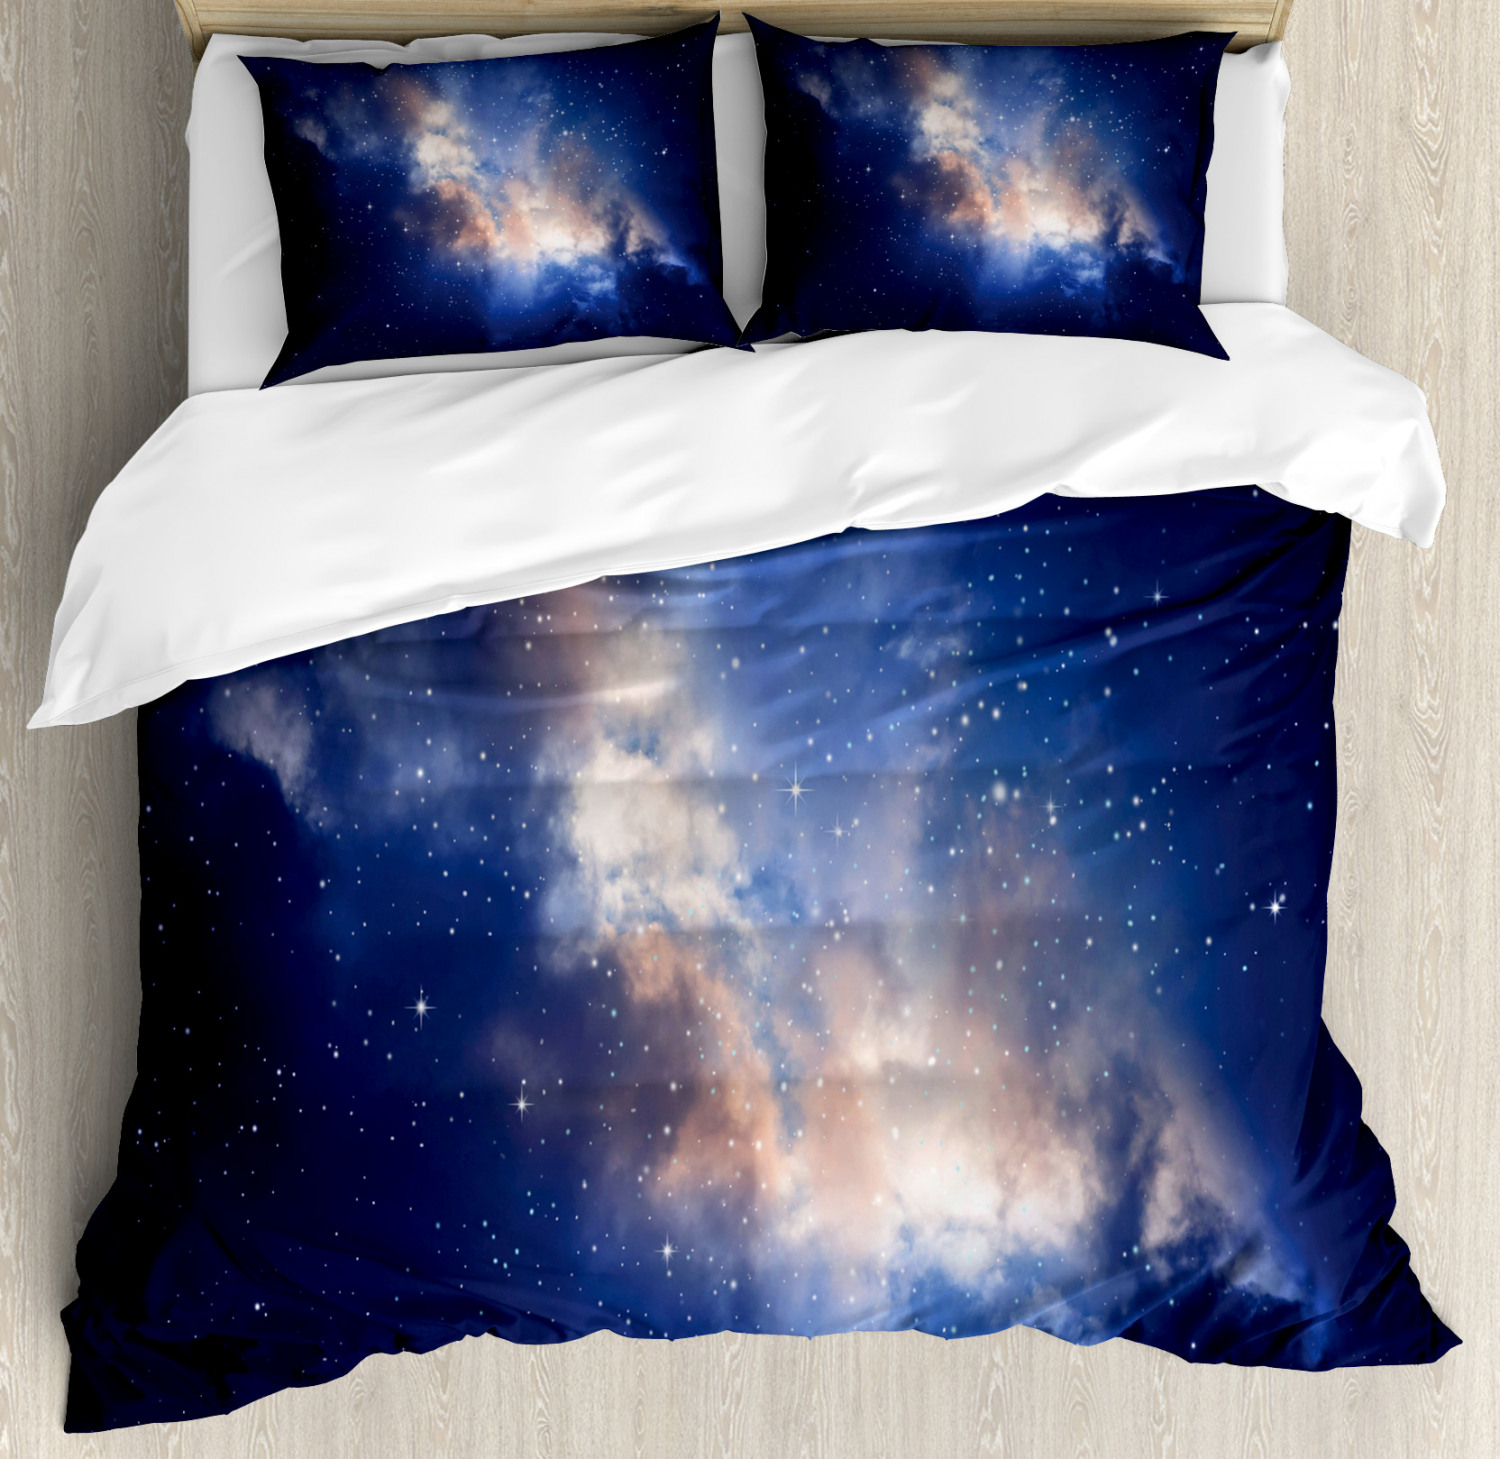 Galaxy Duvet Cover Set with Pillow Shams Immense Space Hole View Print